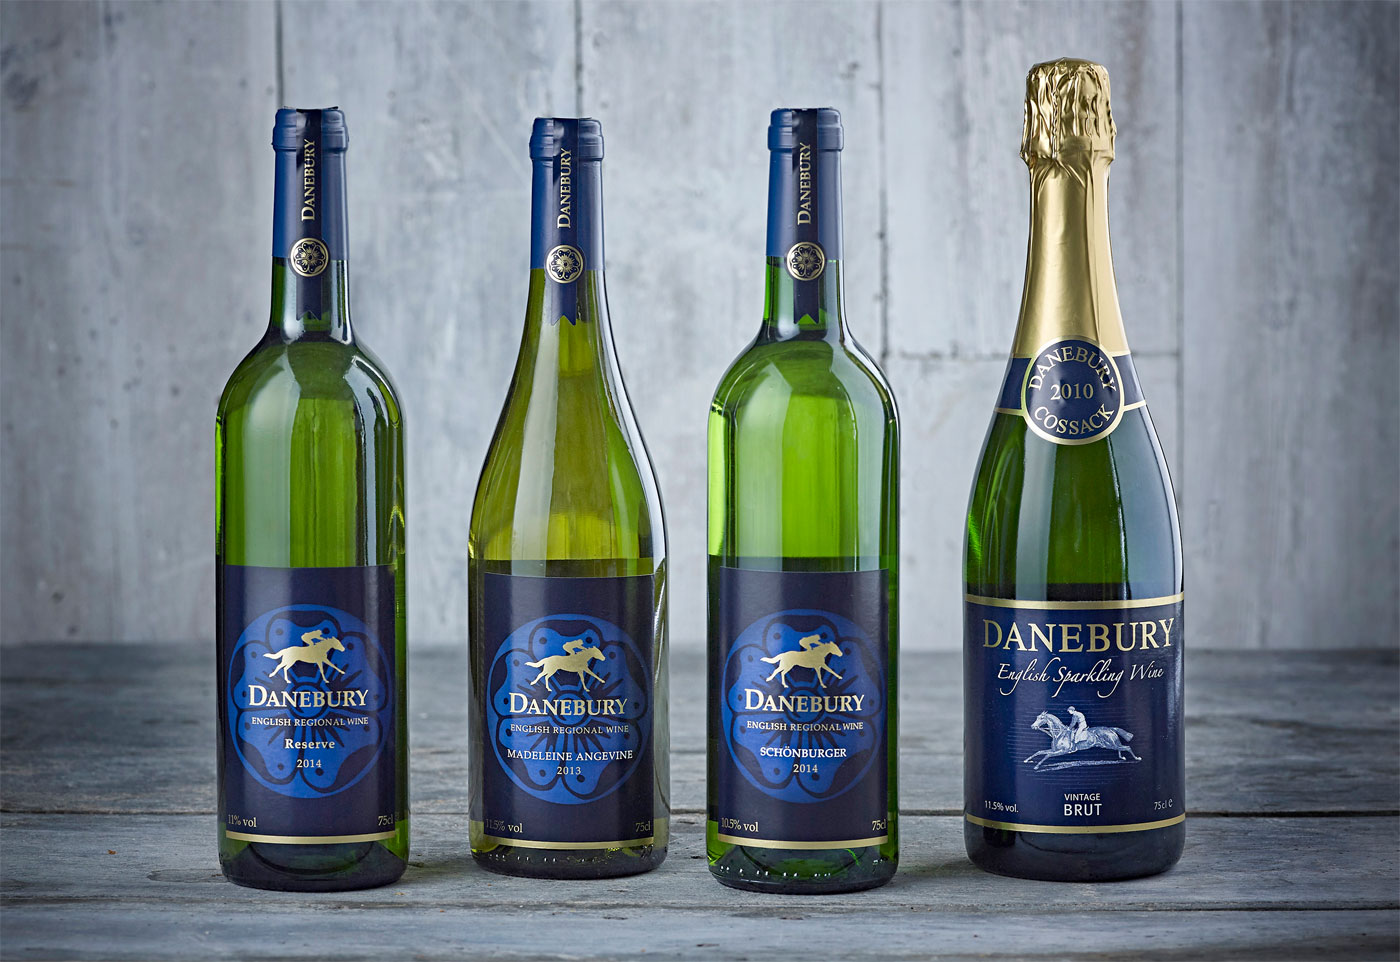 We Take a Look at the Fine English Wines from Danebury Vineyard 2